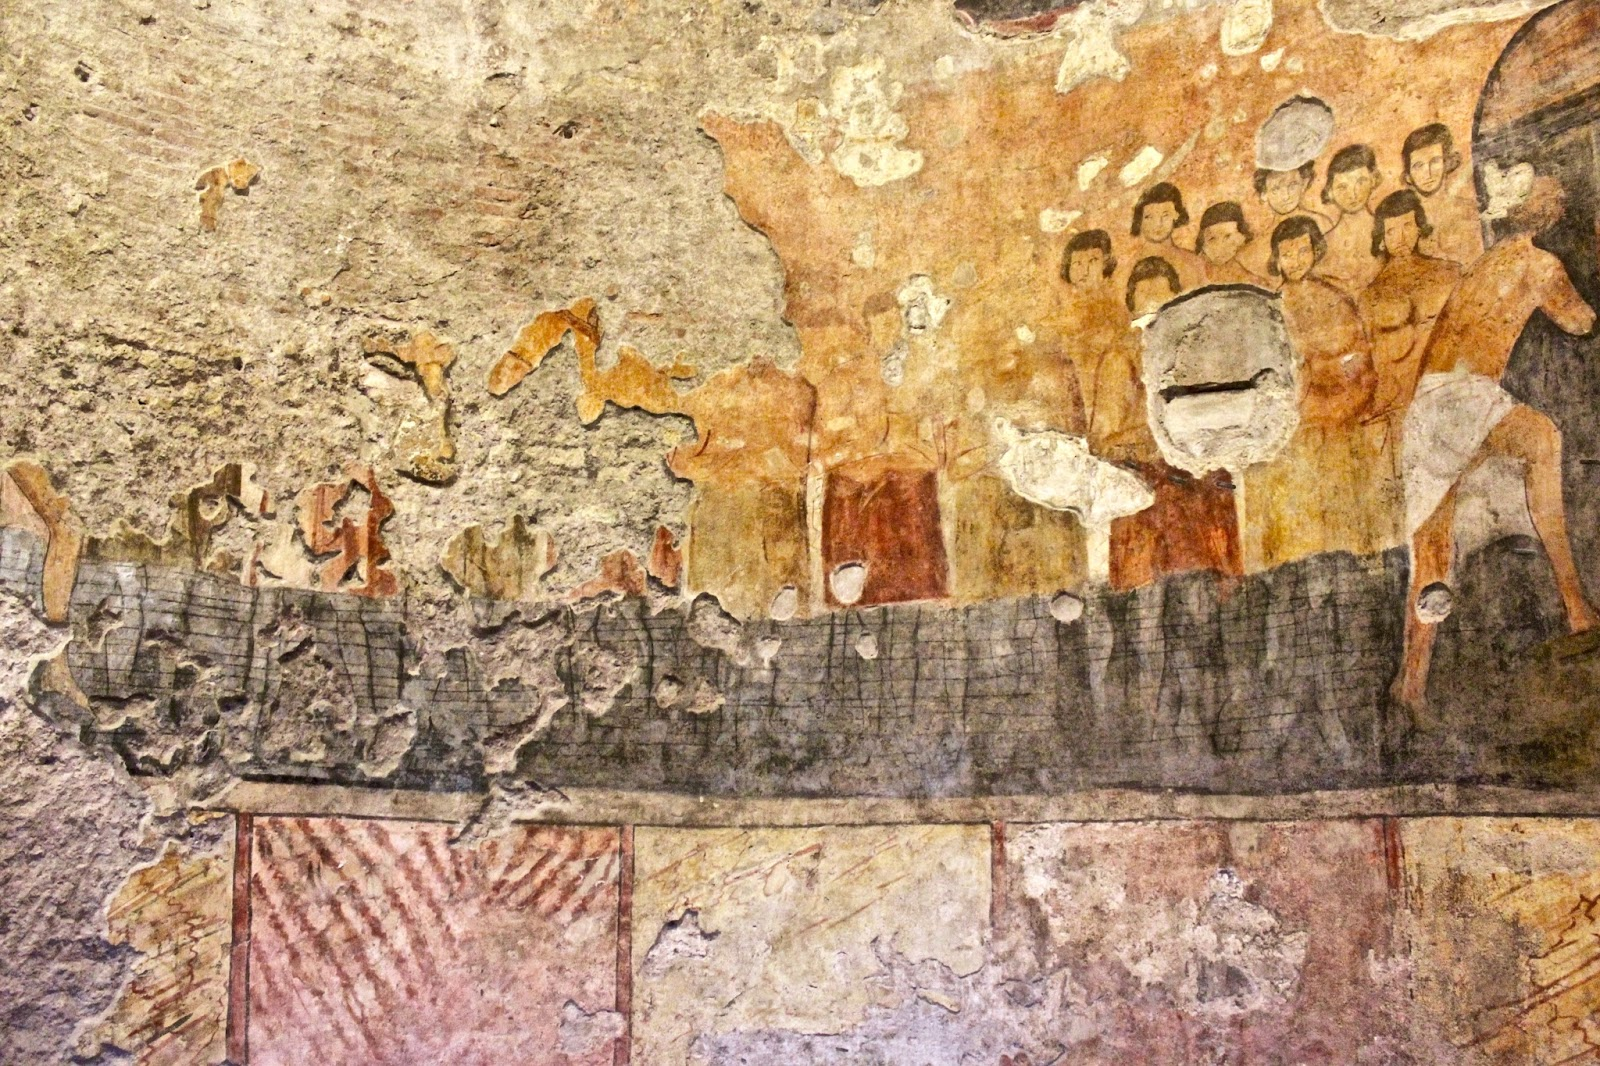 the roman anglican byzantine wonder in the roman forum the church also hosts an incredible quantity of frescoes executed between the 6th and 9th century in the byzantine stye these works are very important